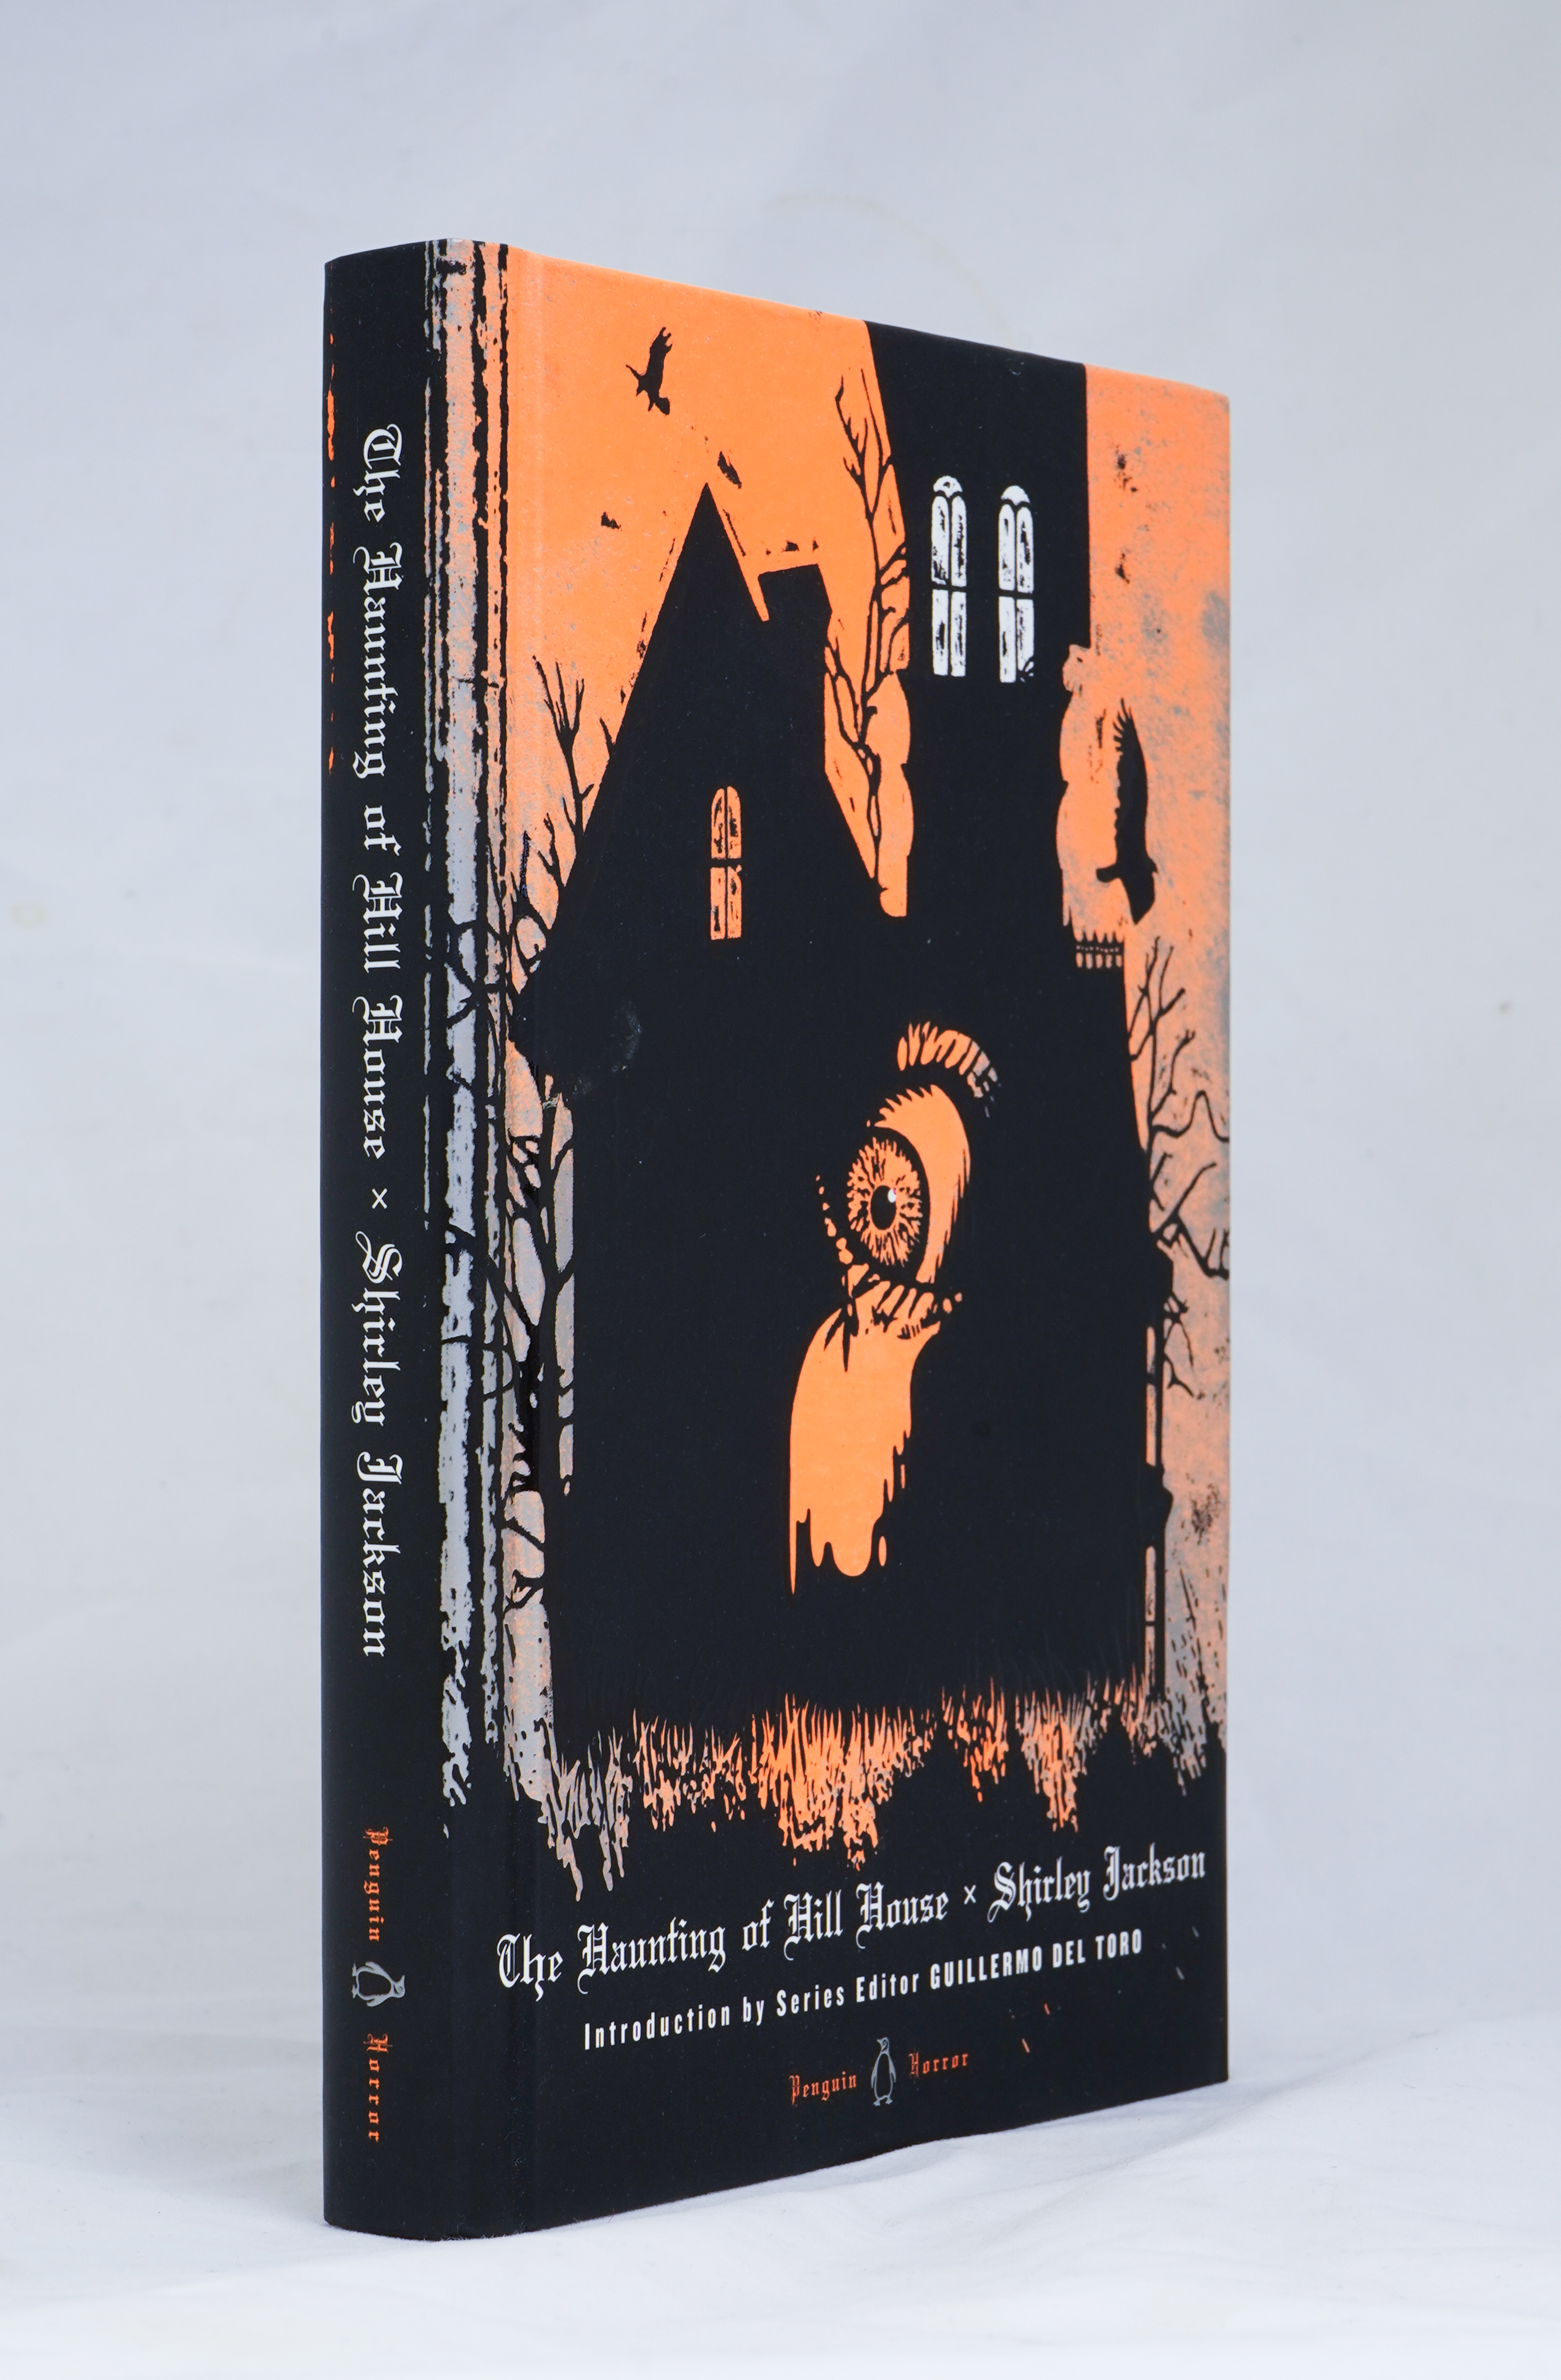 The Haunting Of Hill House By Jackson Shirley Ed Benicio Del Toro Fine 2013 Signed By Author S Pryor Johnson Rare Books Abaa